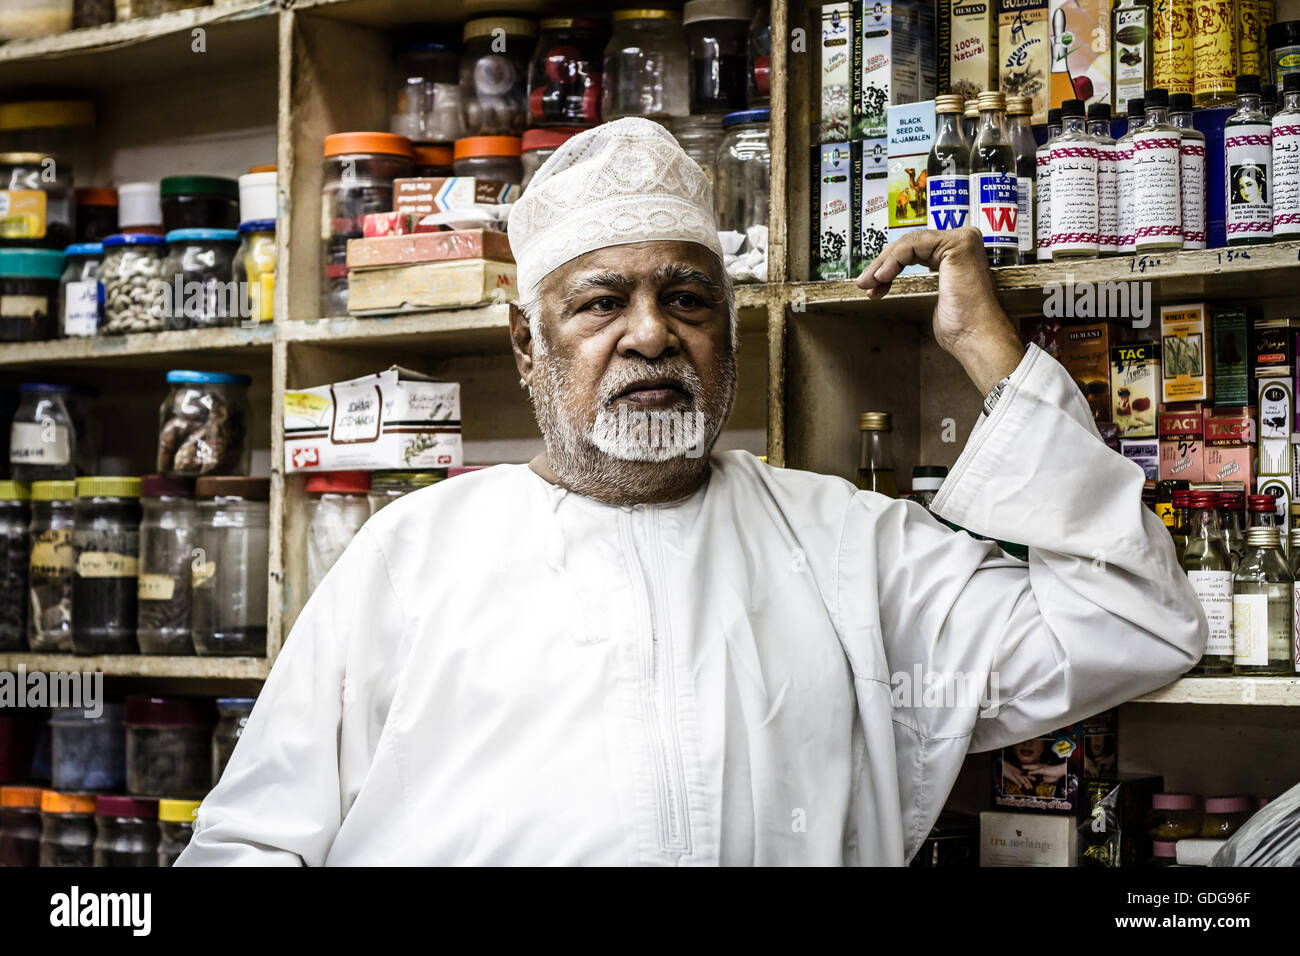 Spice Trader Old Muttrah Souk, Oman. - Stock Image